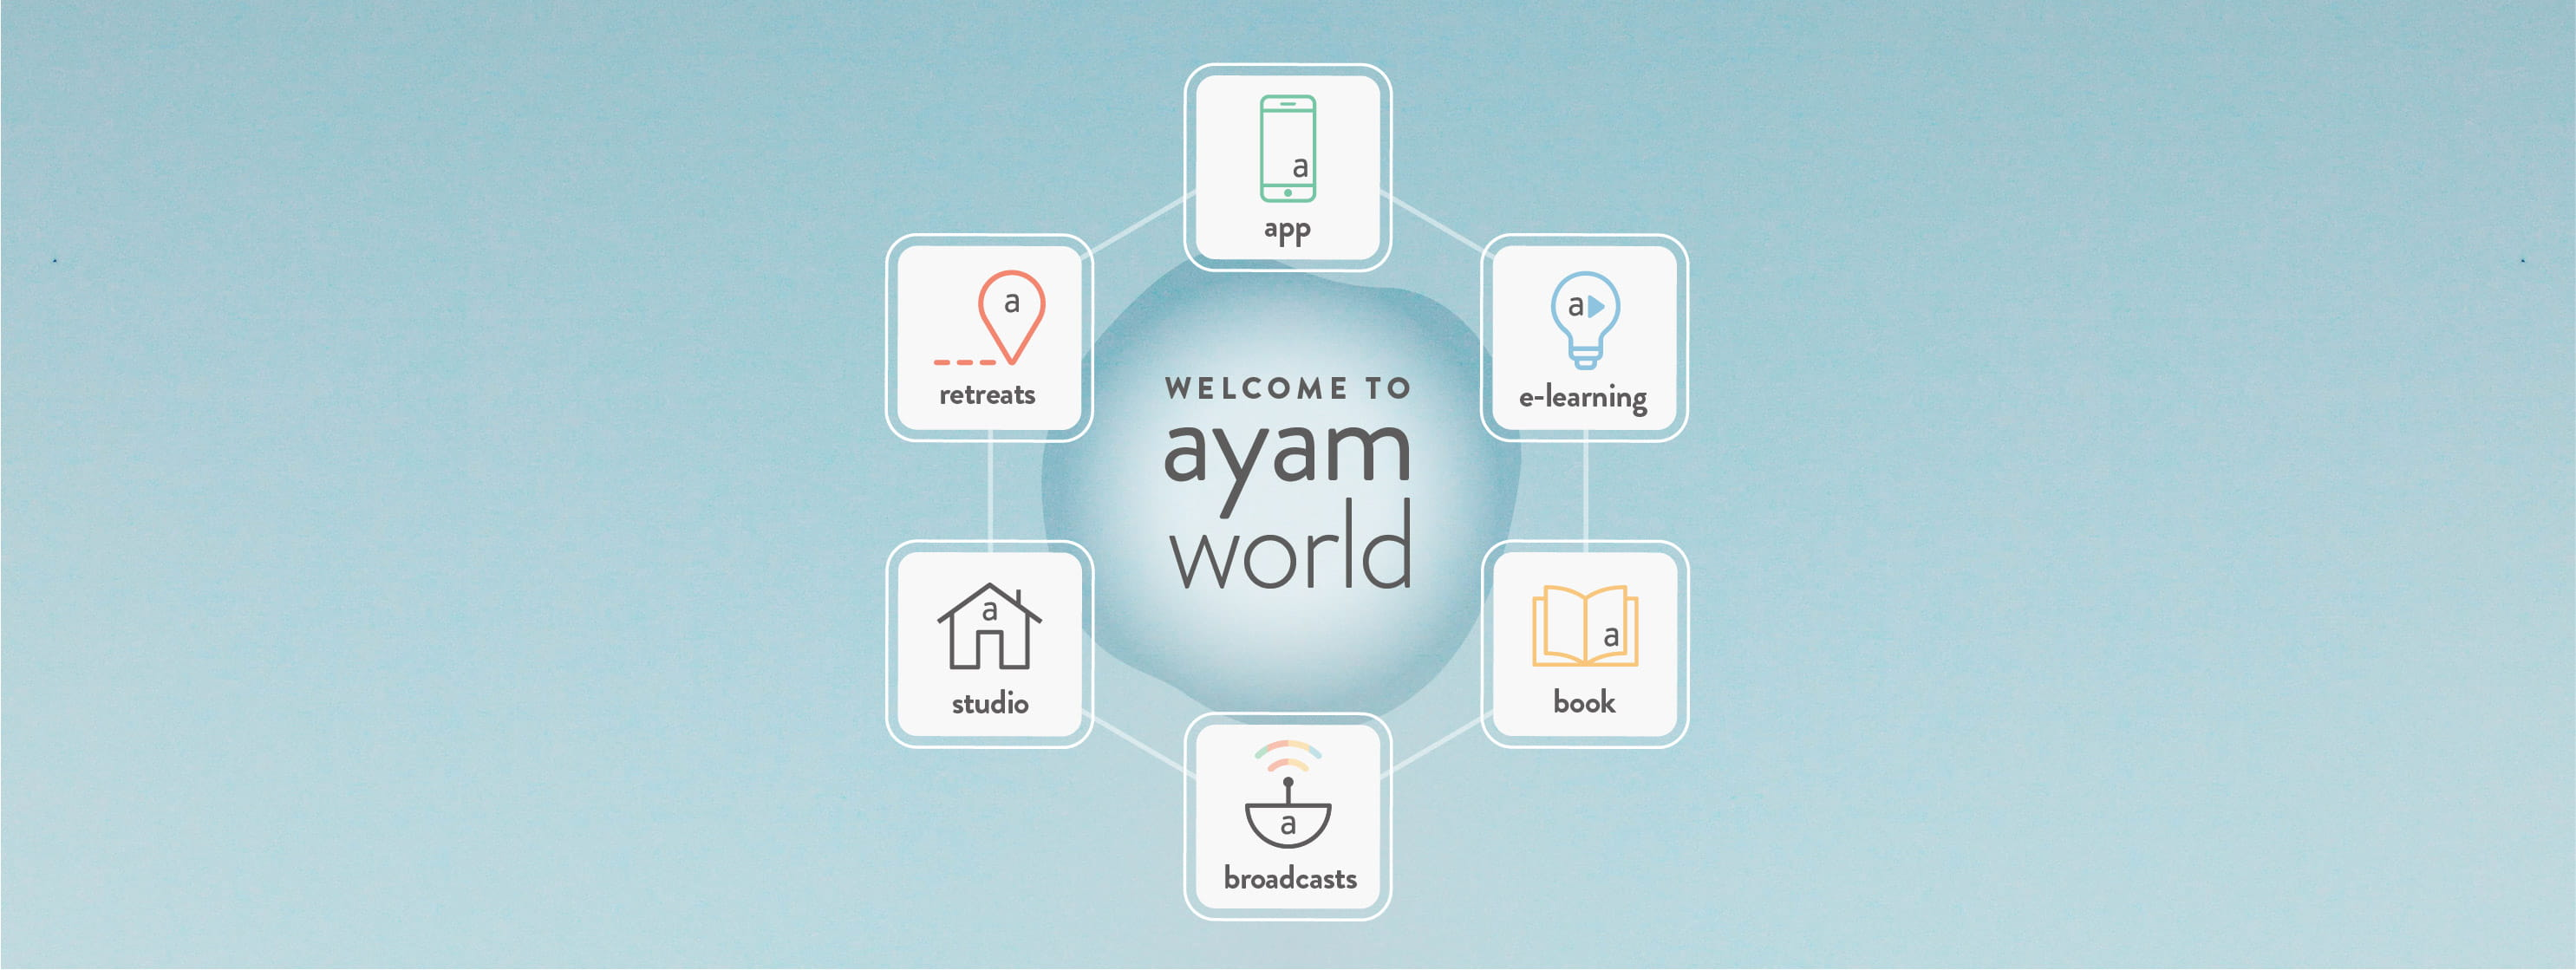 ayam-world-mindfulness-meditation-products-and-services